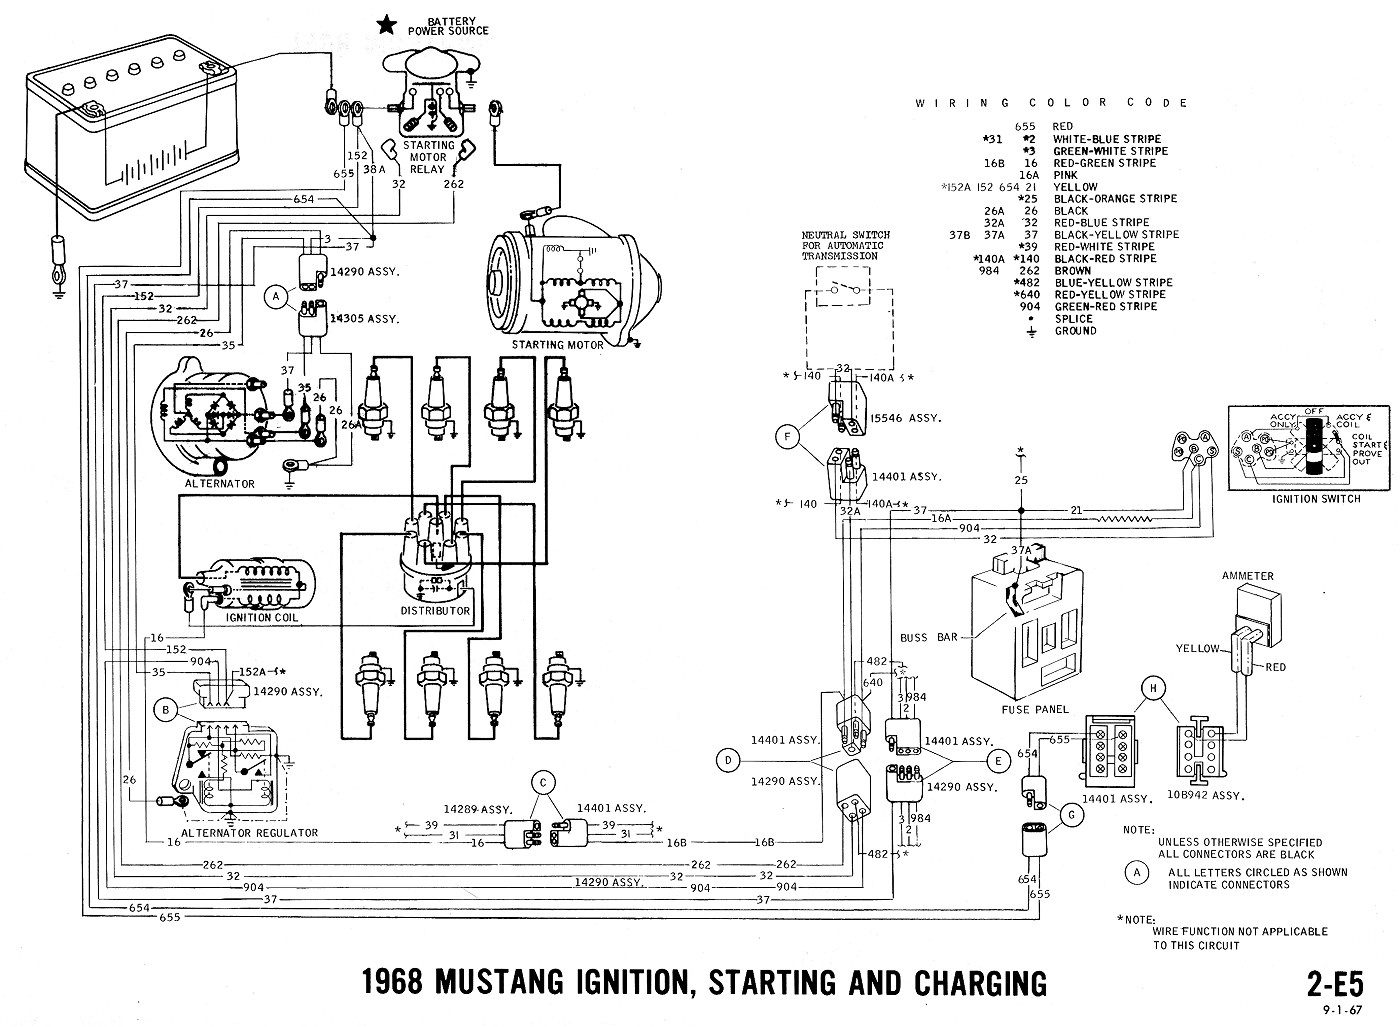 tachometer wiring diagram for 1968 ford mustang all about wiring diagram for 1968 ford mustang